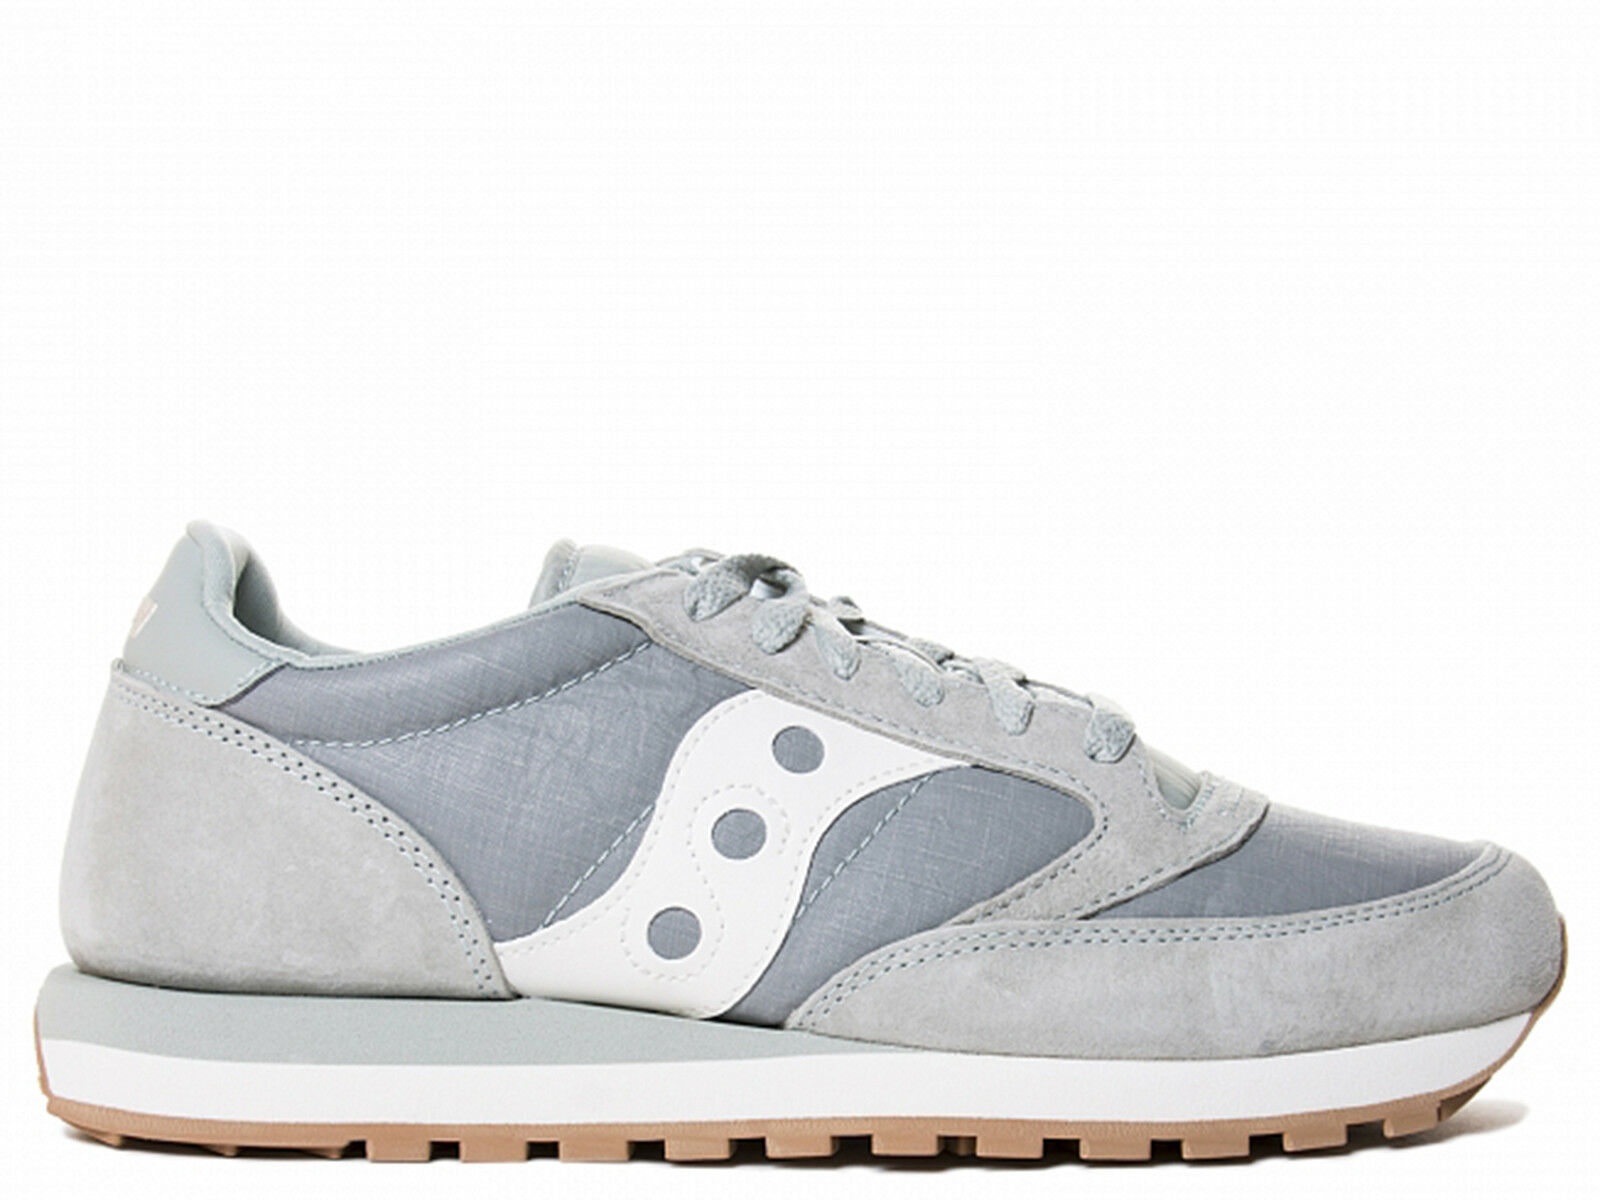 Brandneu Saucony Jazz Original Cl Herren Athletic Mode Turnschuhe